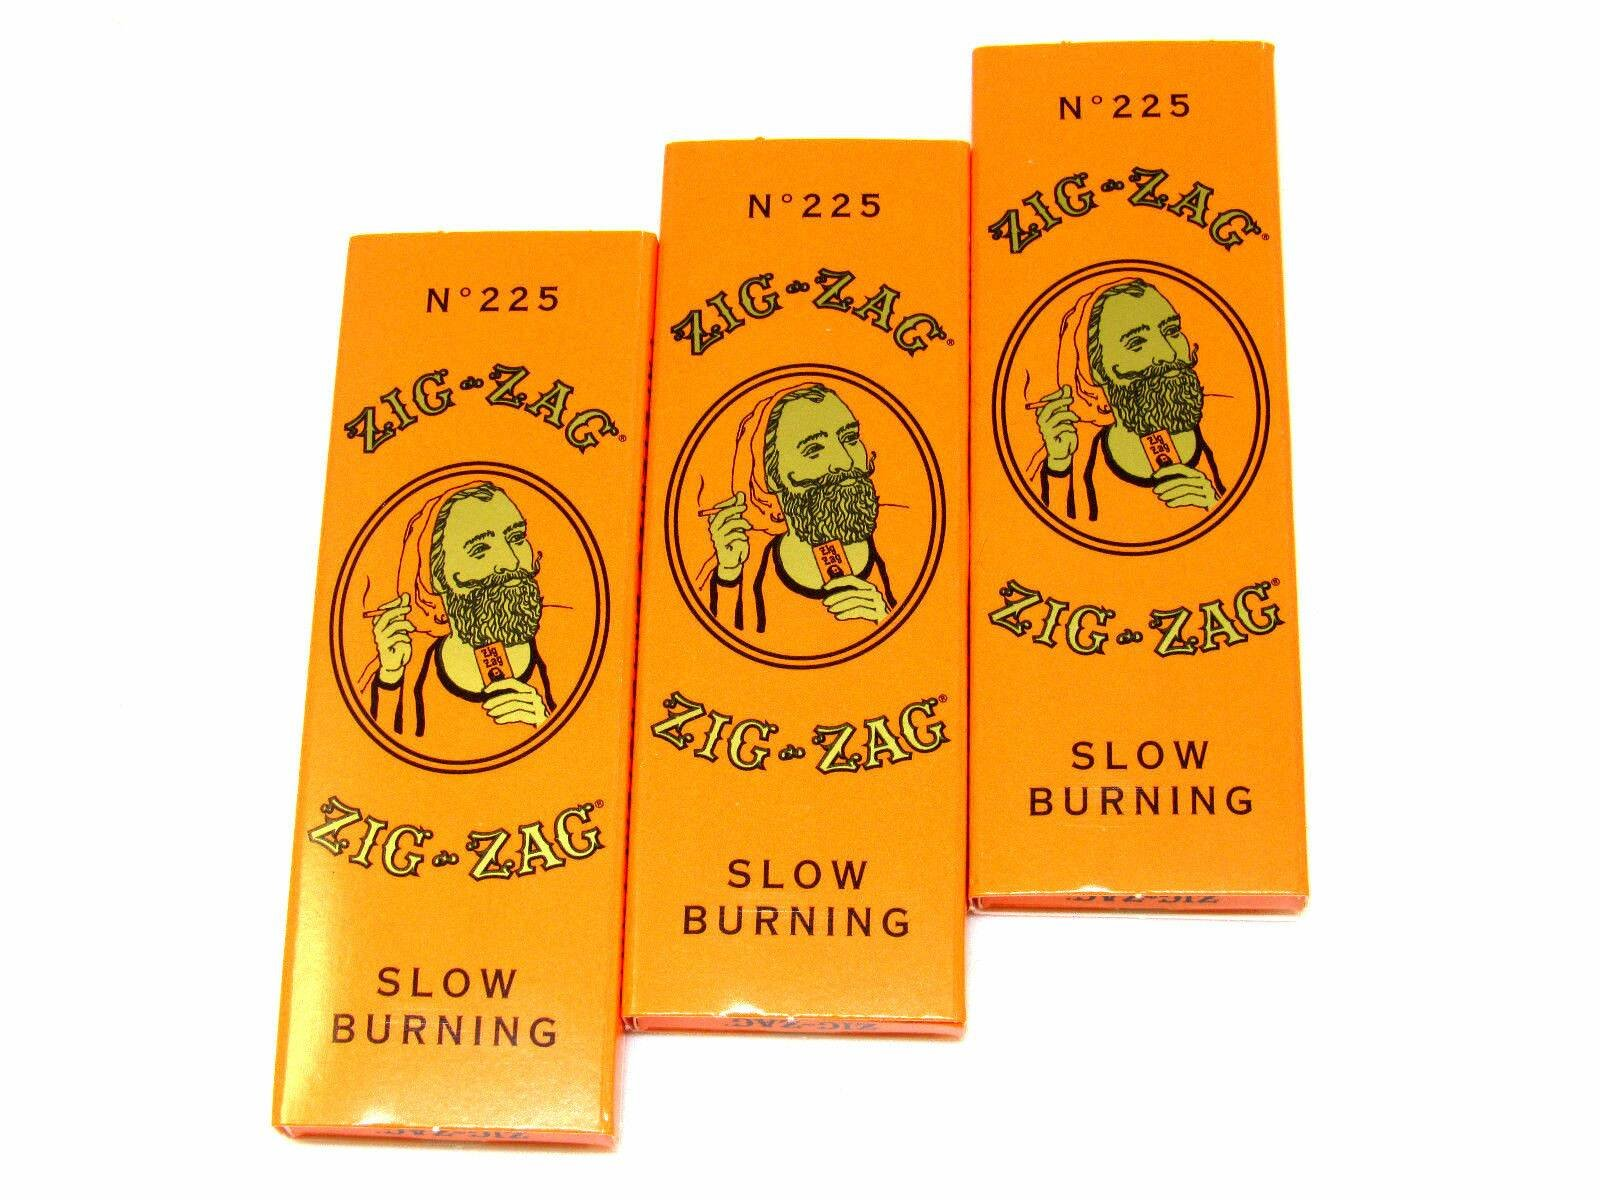 3 Packs Zig Zag Orange Rolling Papers - 32 Papers a Pack-1 1/4